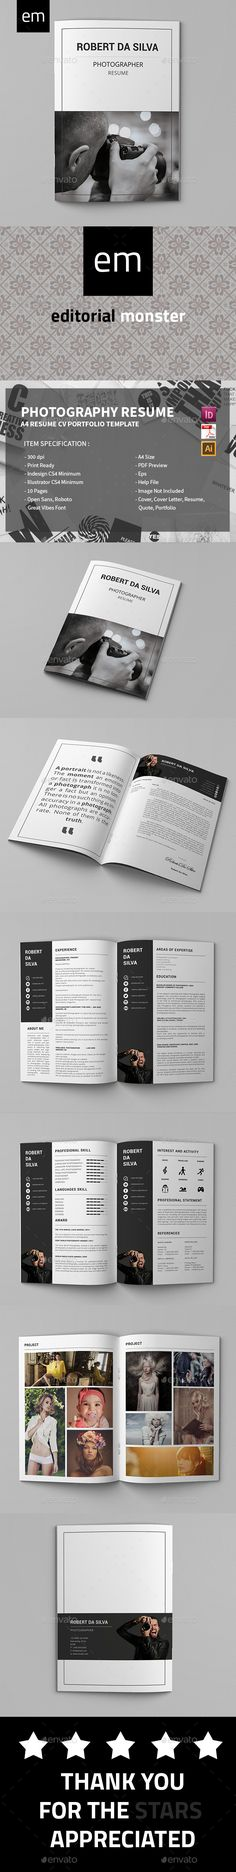 Pro Infographic Resume Infographic resume, Infographic and Fonts - monster resume templates